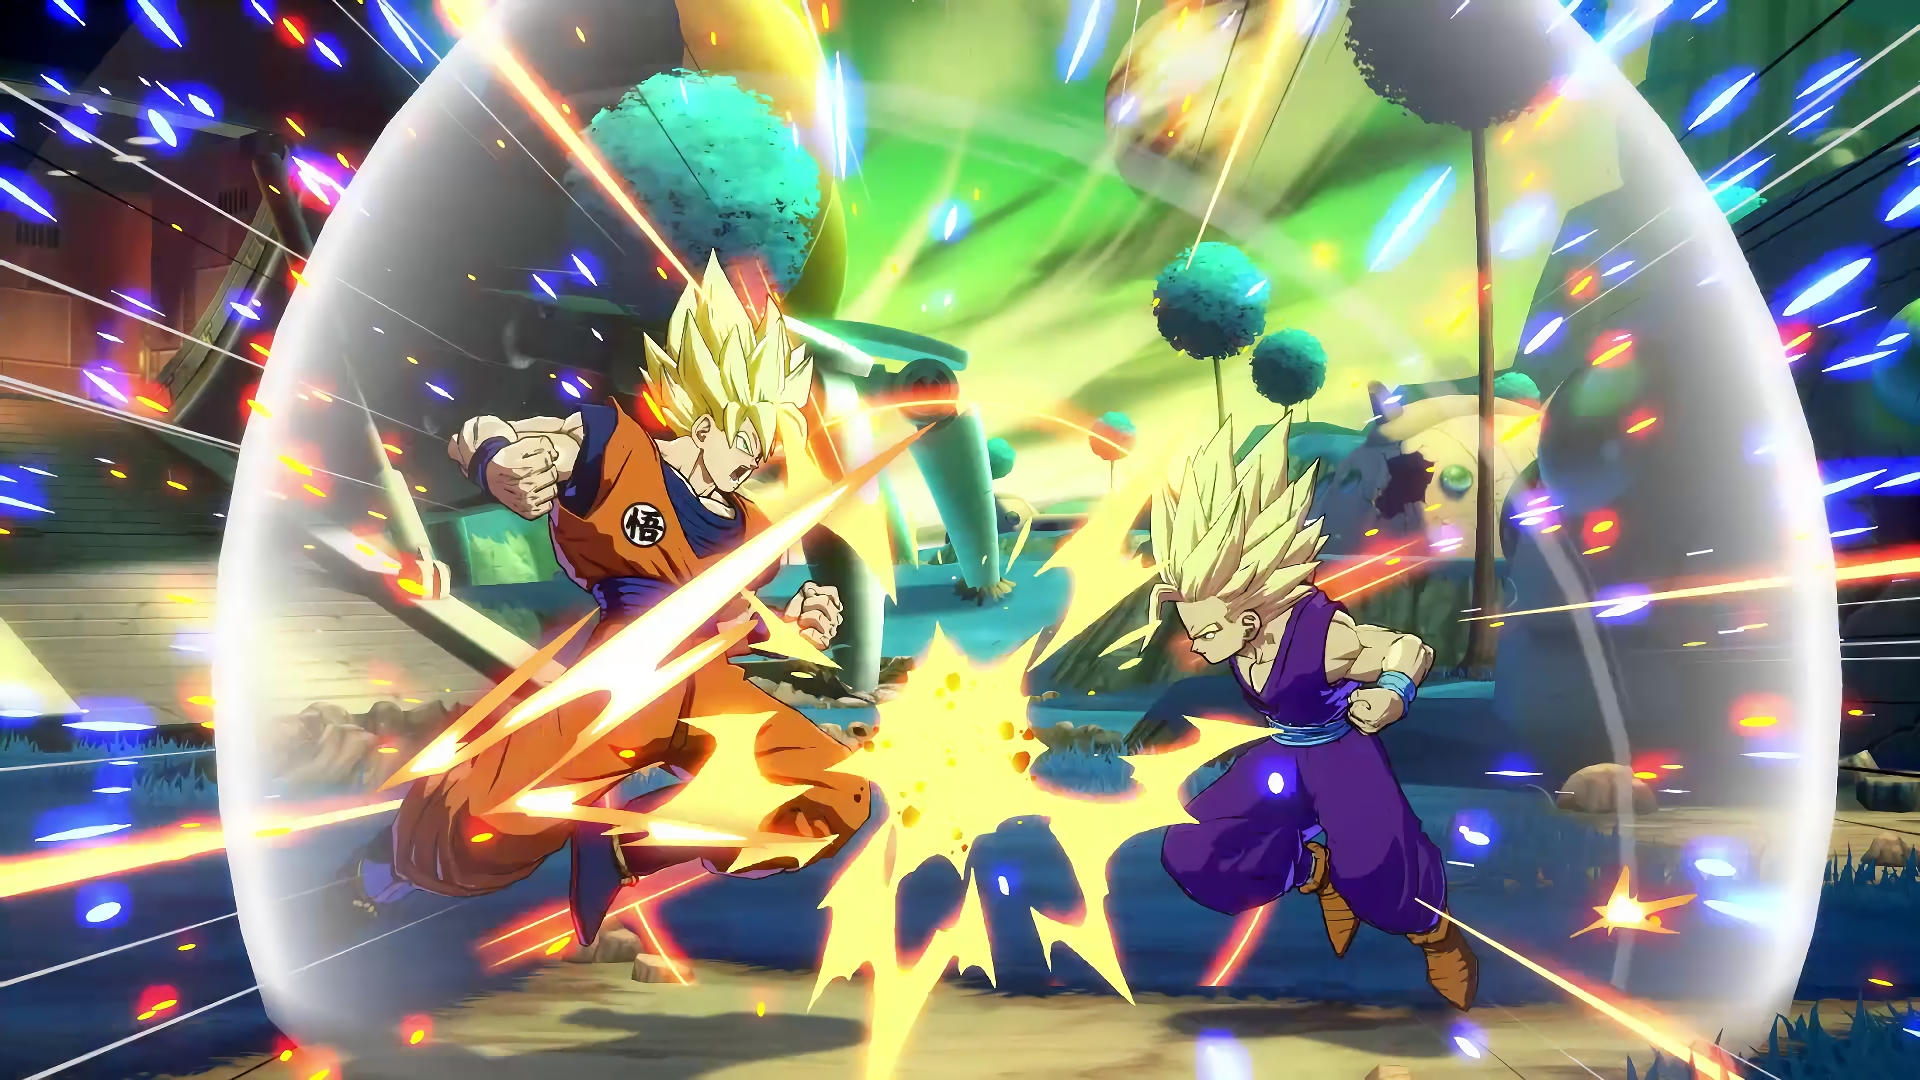 Surprise character hits Dragon Ball FighterZ before launch